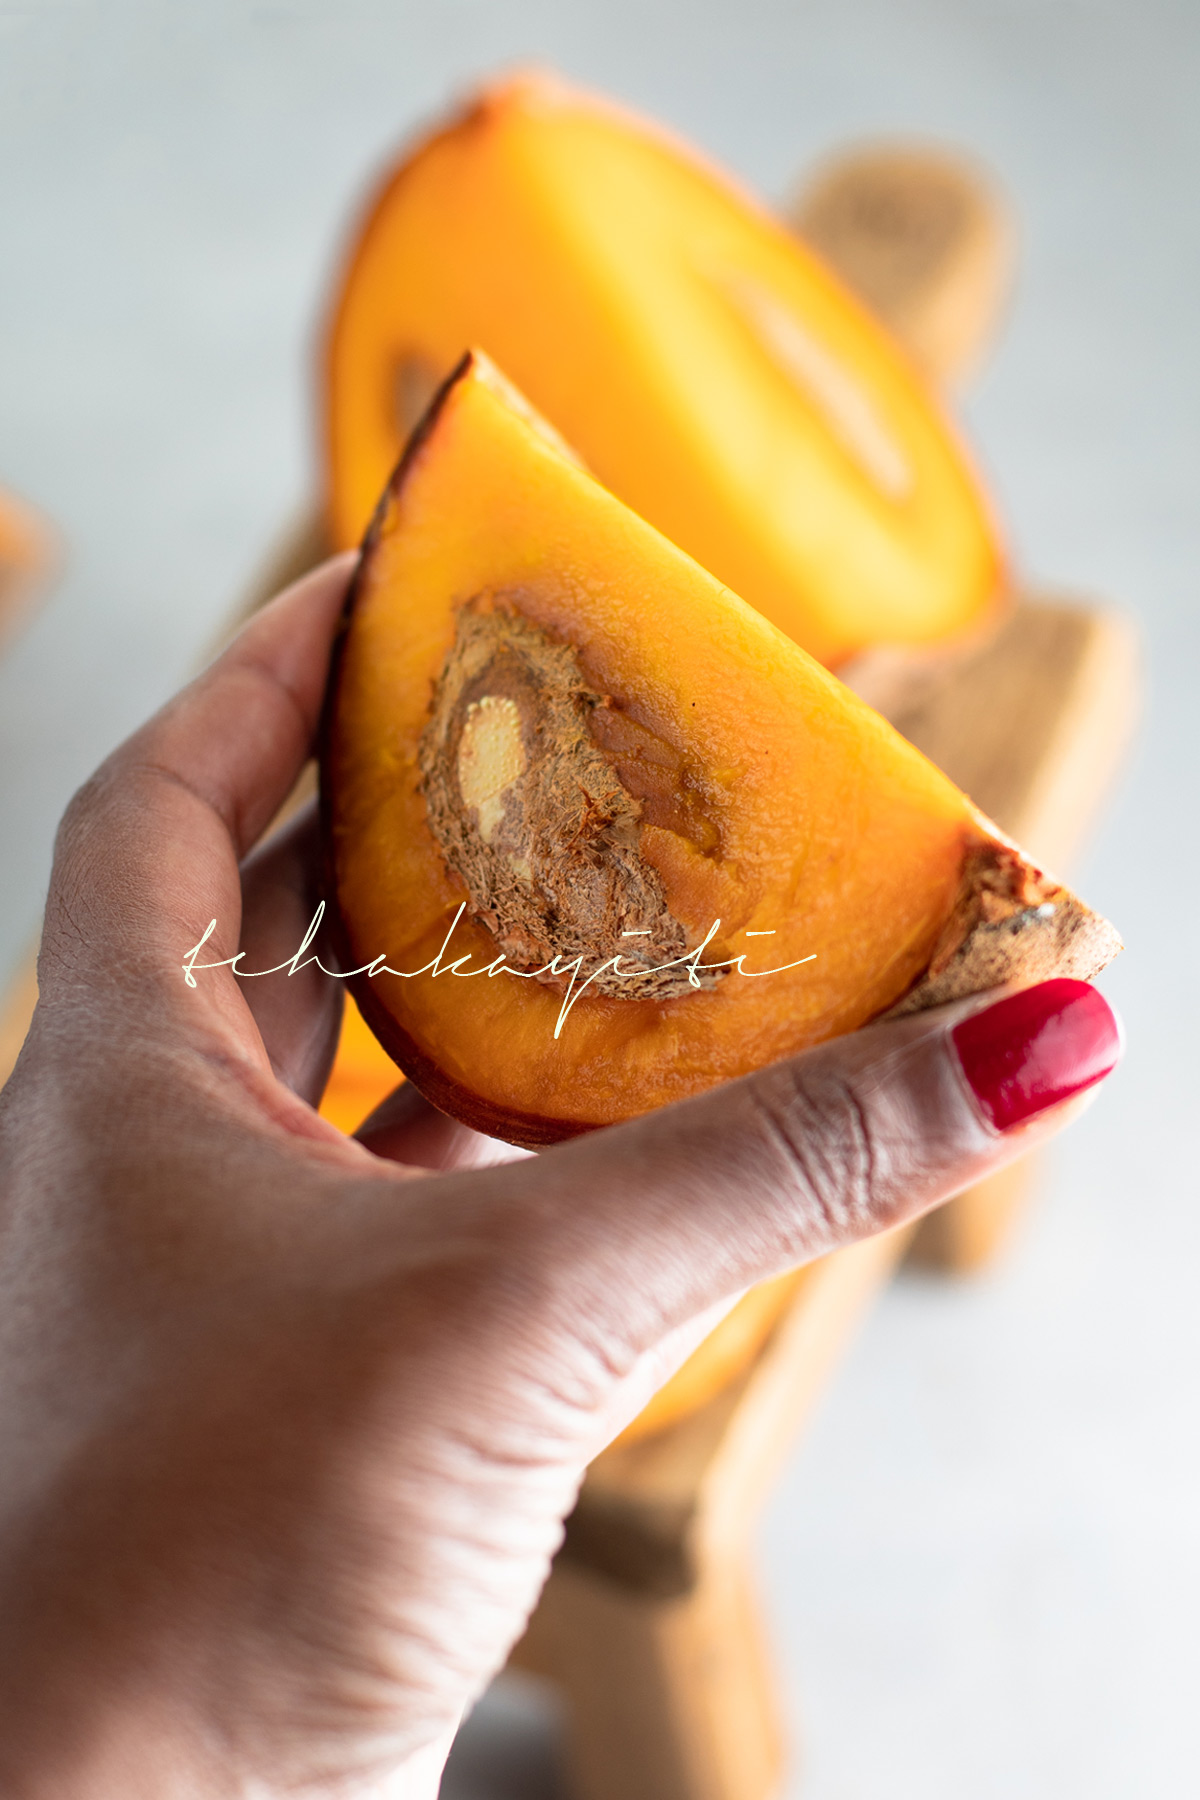 A Caribbean Apricot, mamey, will brighten your day and palate during the early summer days. | tchakayiti.com